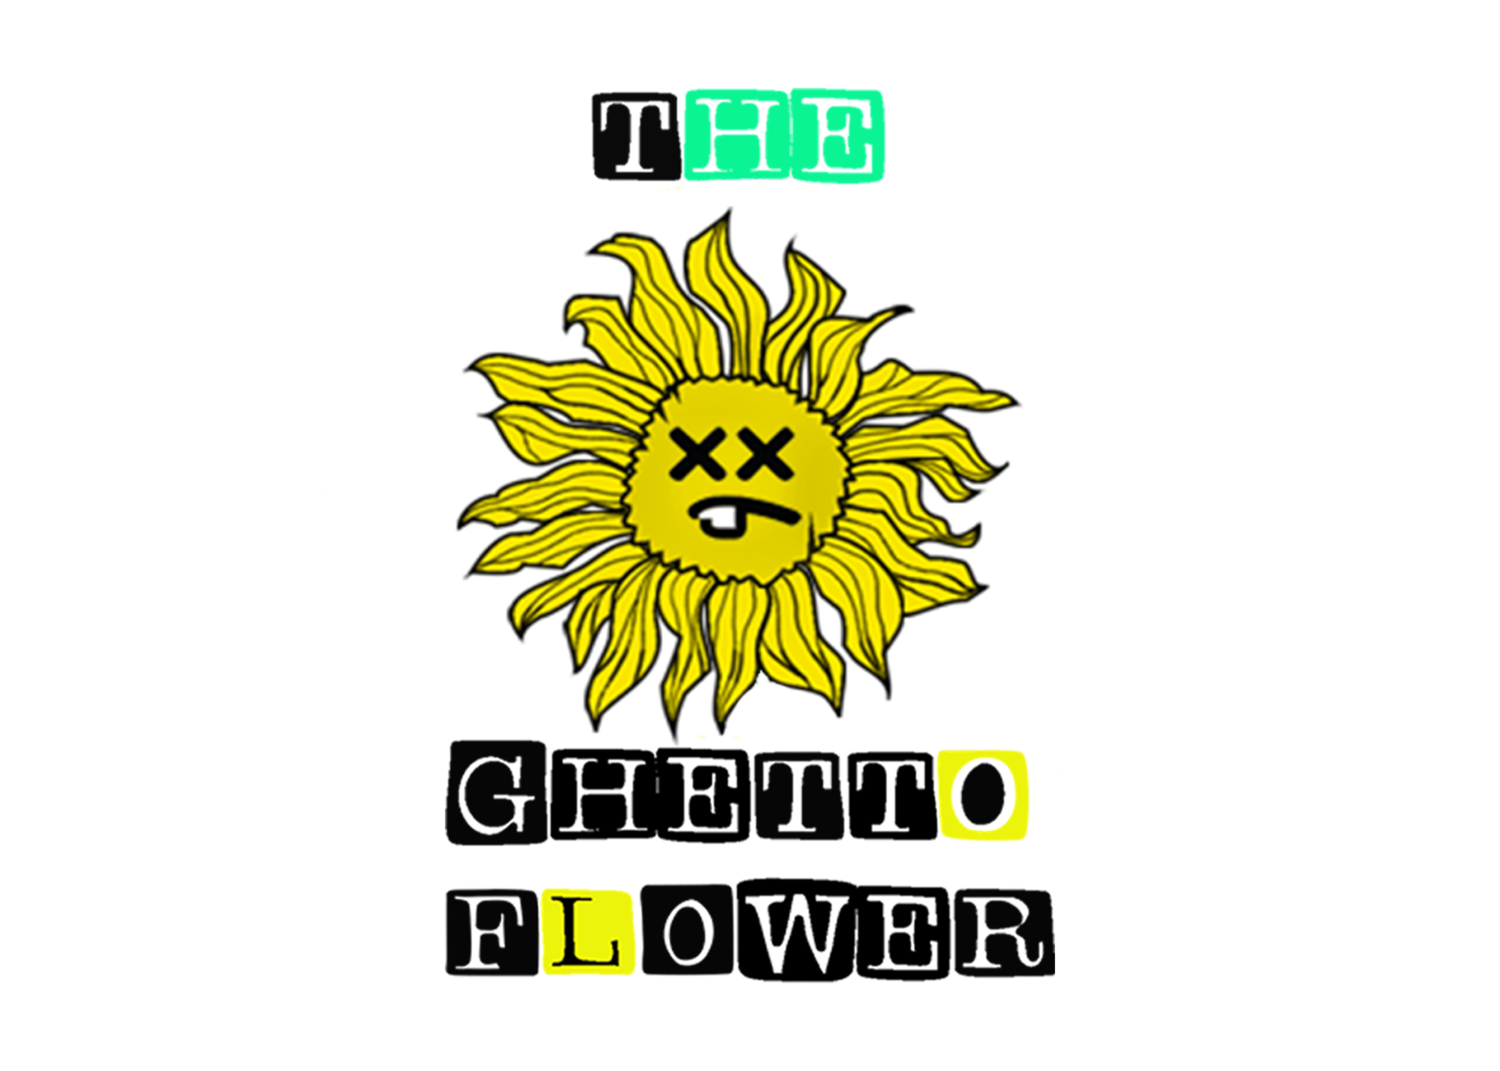 The Ghetto Flower